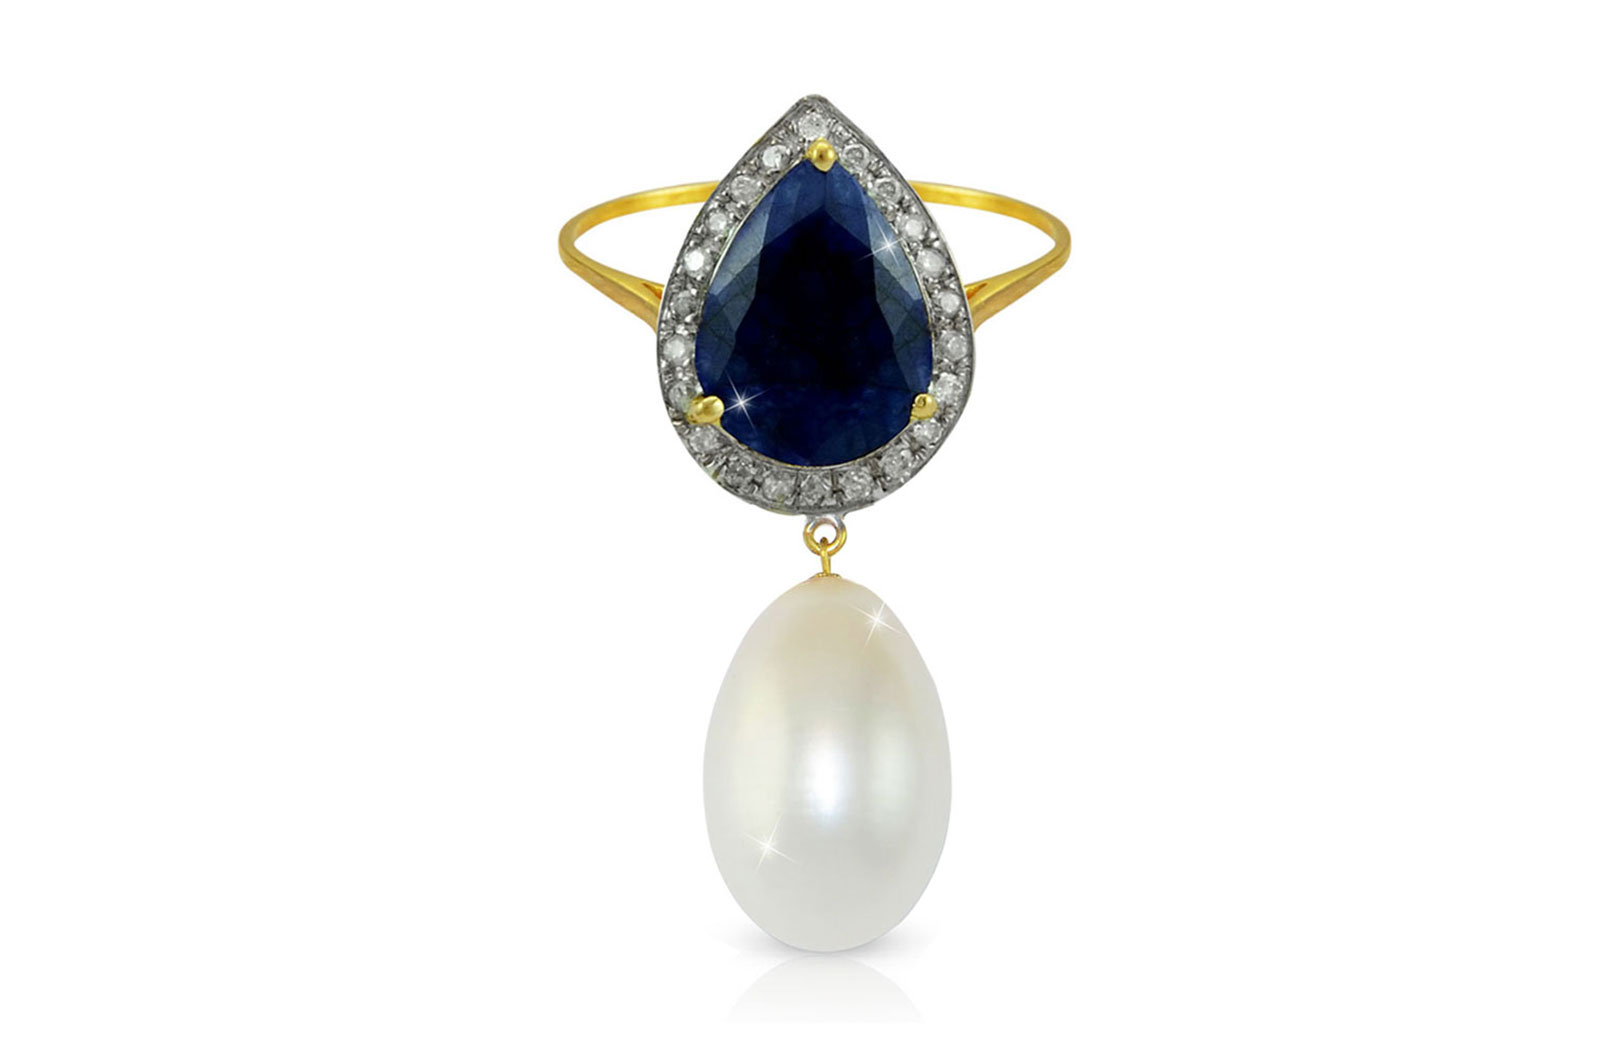 Vera Perla 18K Gold 0.12ct Diamonds, Royal Indian Sapphire and 13mm Pearl Ring